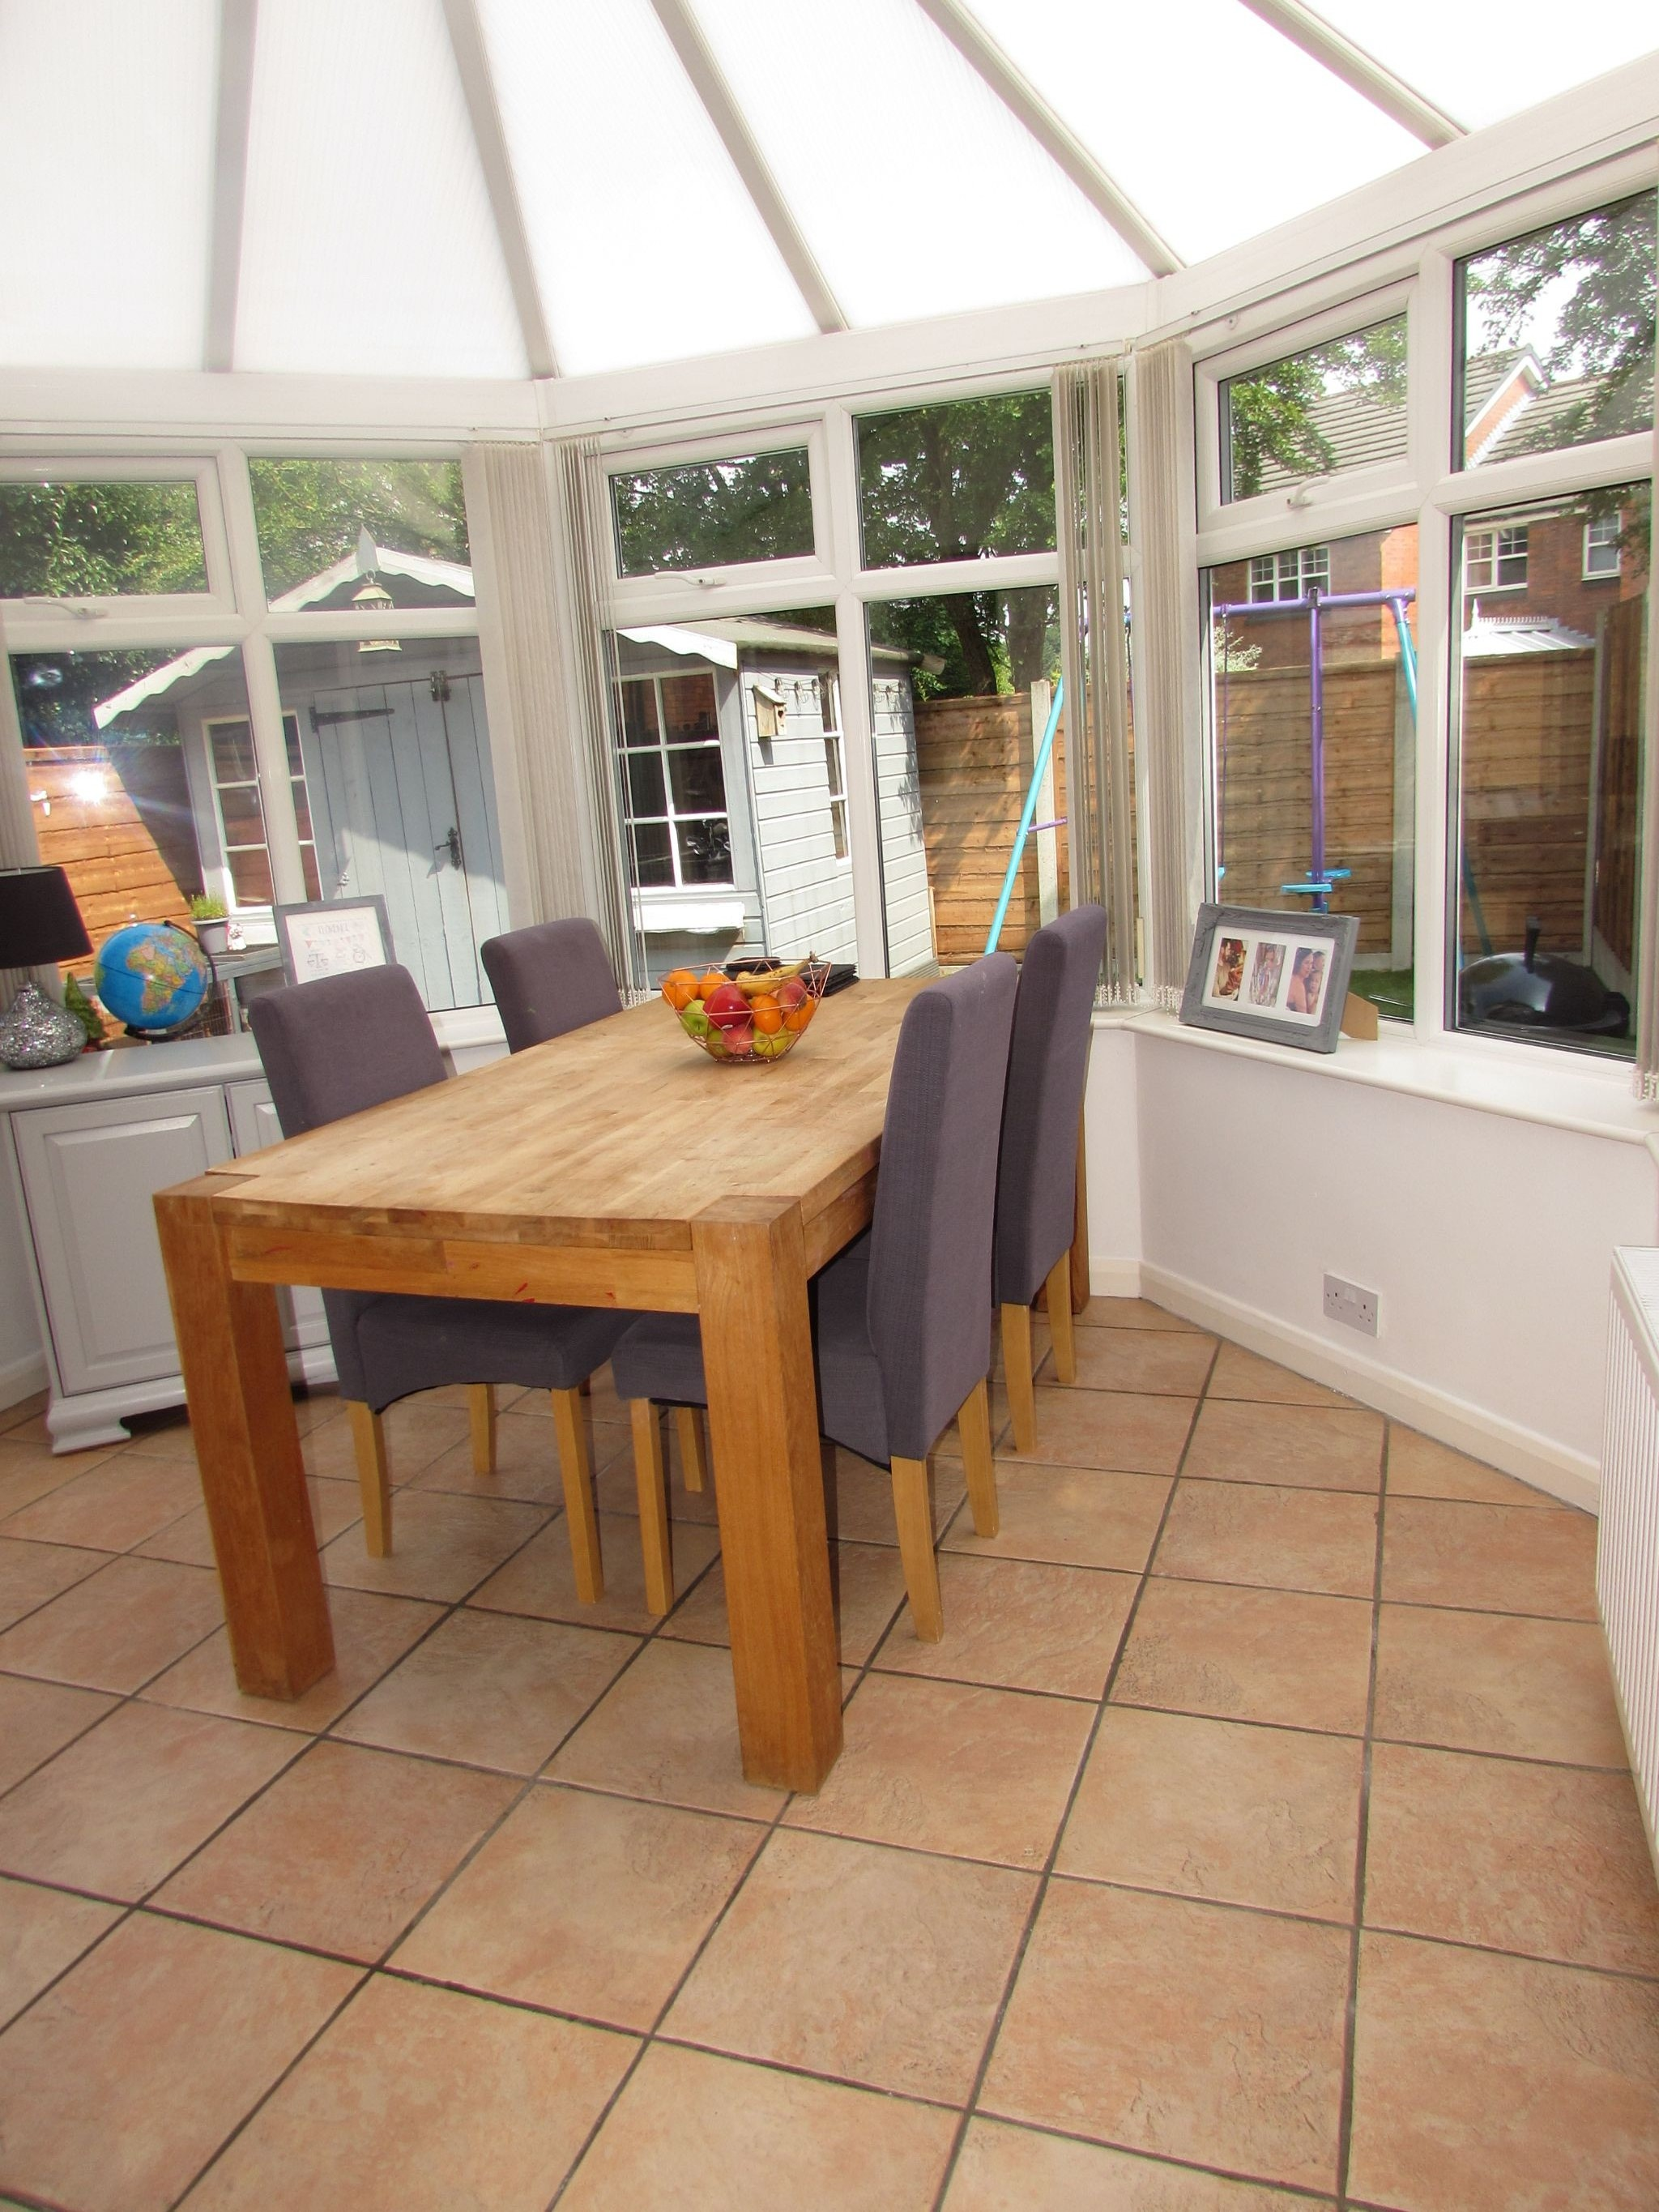 2 Bedroom Semi-detached House For Sale - Conservatory